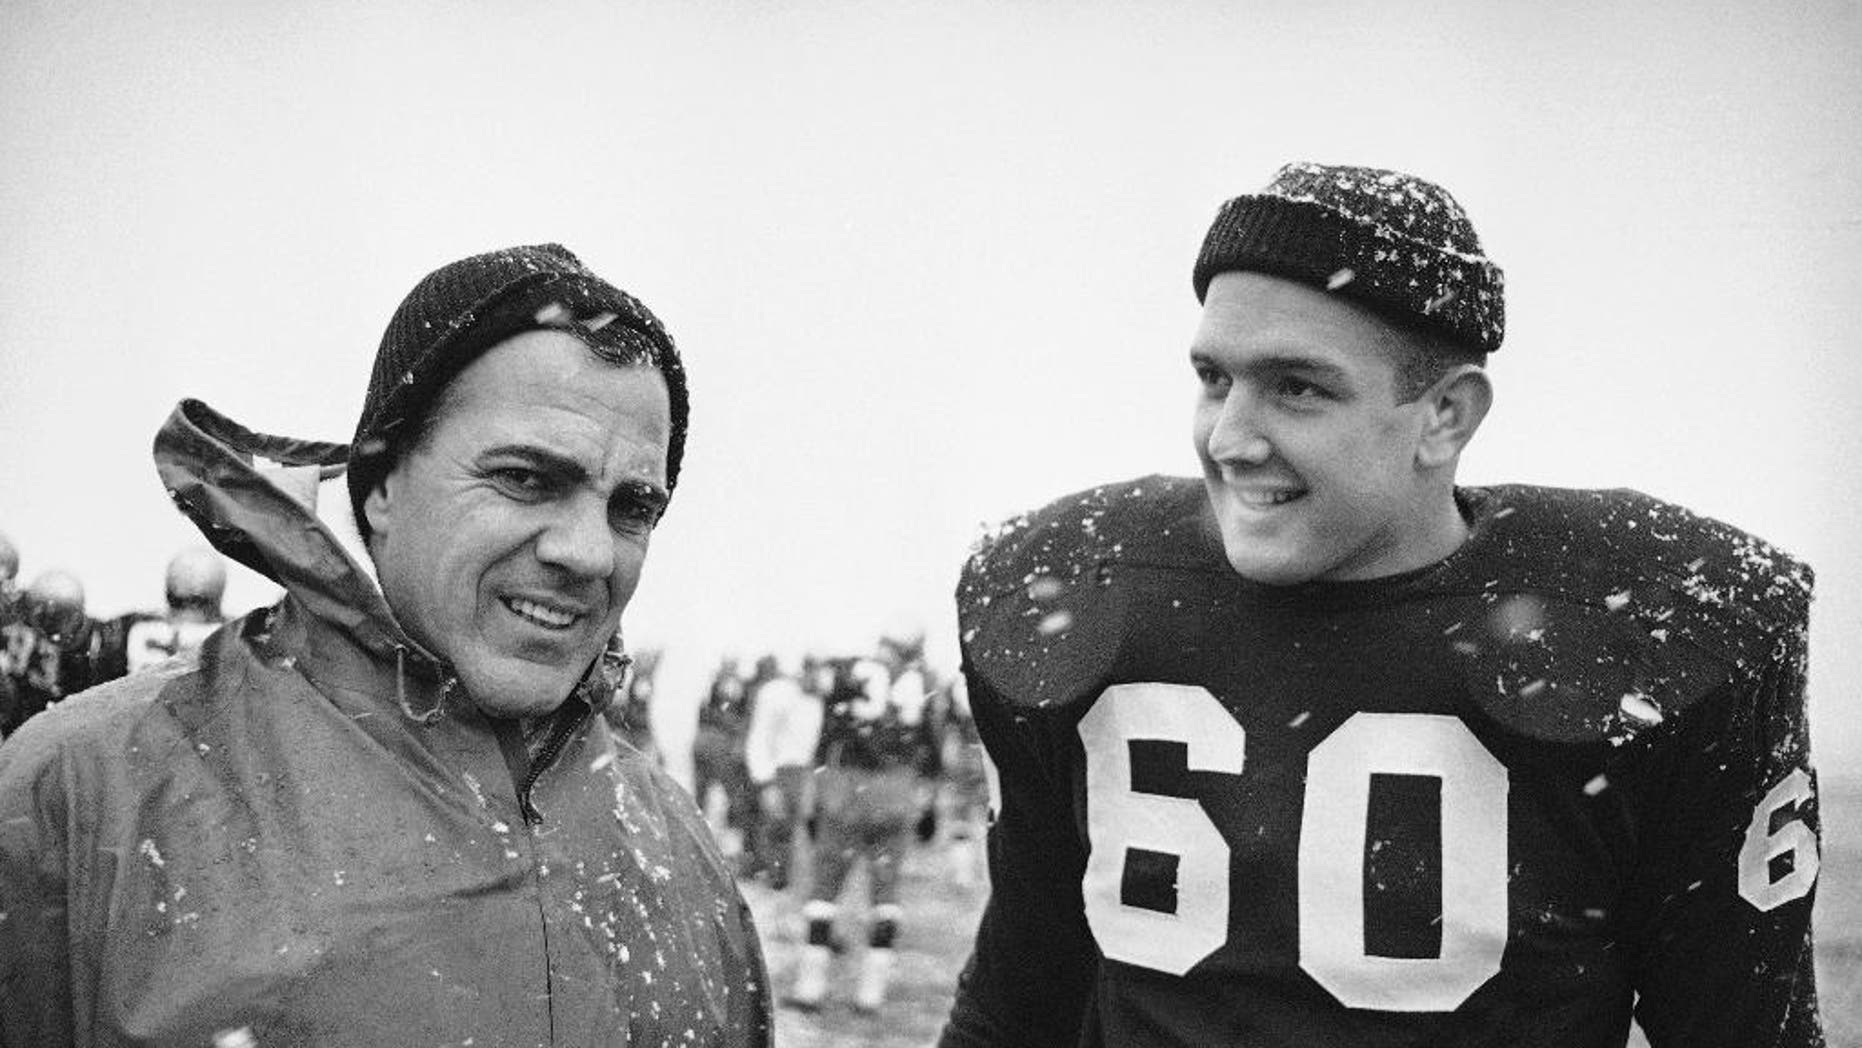 FILE - In this Nov. 20, 1964, file photo, Notre Dame coach Ara Parseghian, left, and team captain James Carroll are shown during a practice session in South Bend. Notre Dame was at rock bottom when Ara Parseghian took over 50 years ago. The Irish finished the season 2-7 in 1963 and the only thing that kept them from matching the worst record in school history set in 1956 was the game against Iowa was cancelled because of the assassination of John Kennedy.  (AP Photo/Charles Knoblock, File)